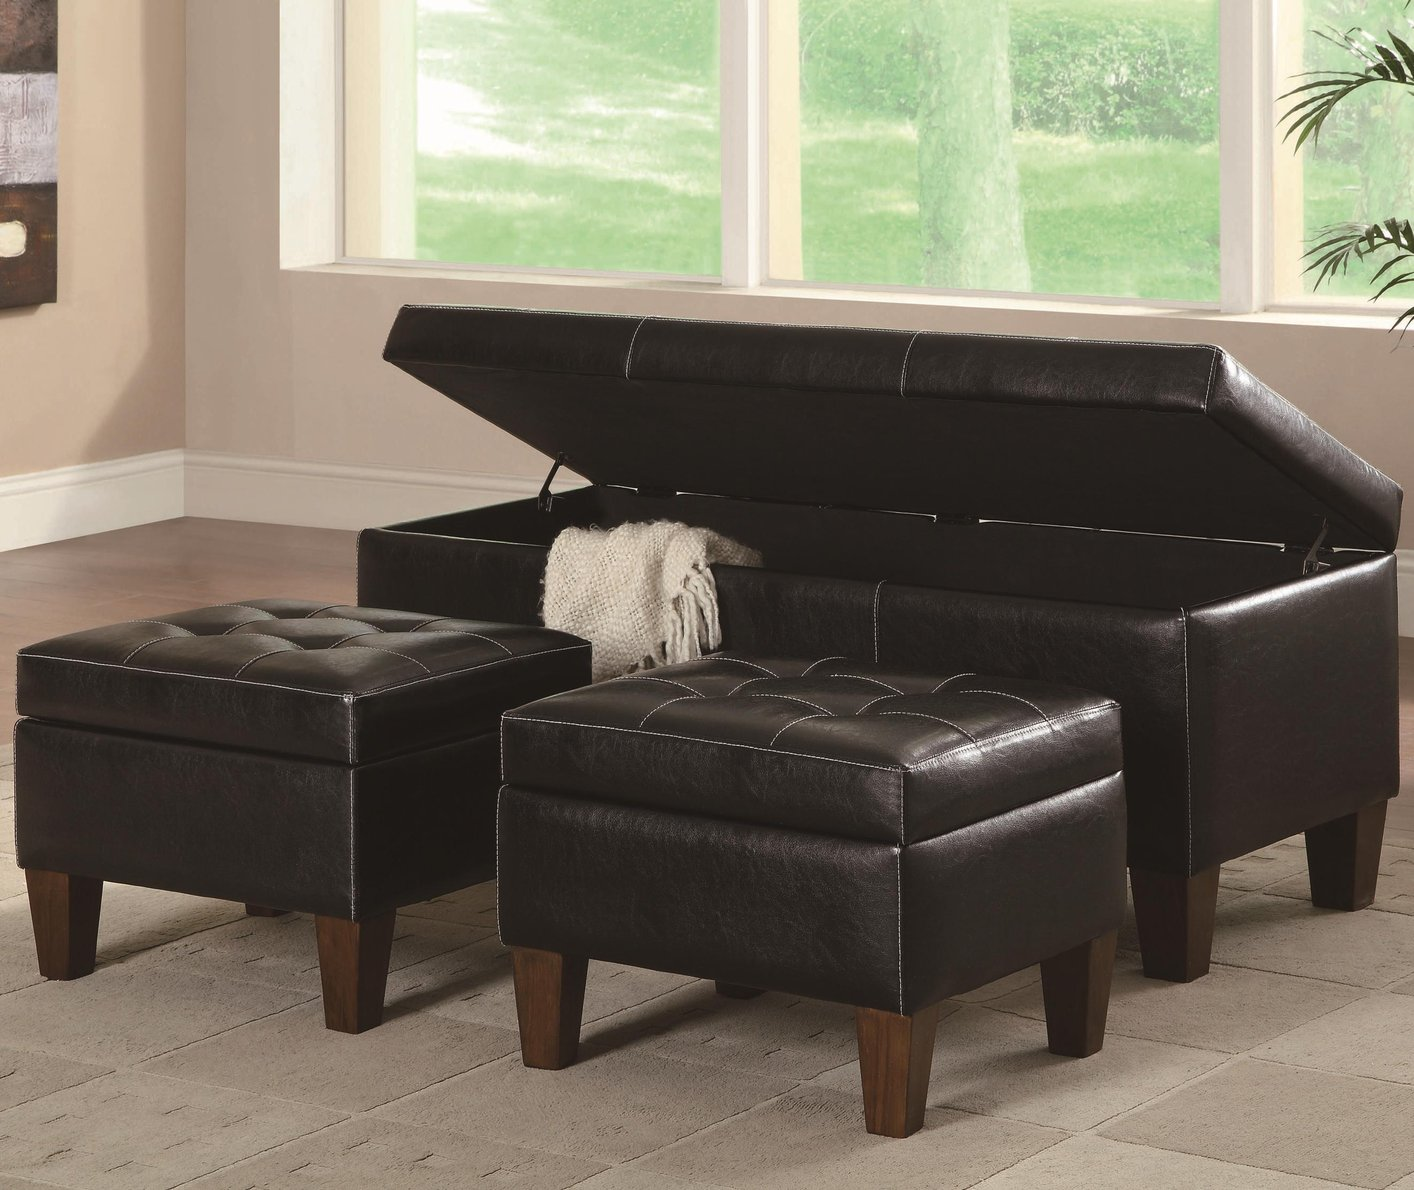 black leather ottoman set